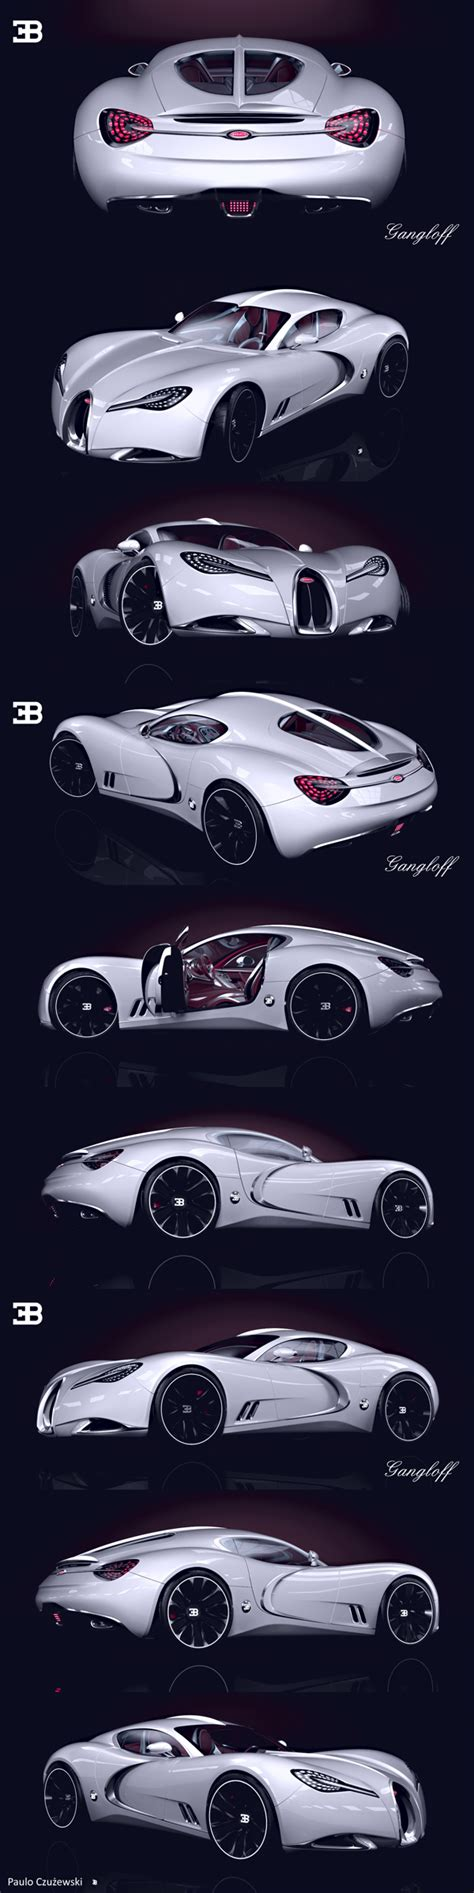 concept bugatti gangloff gangloff bugatti 57 sc by pawel czyzewski magic art world